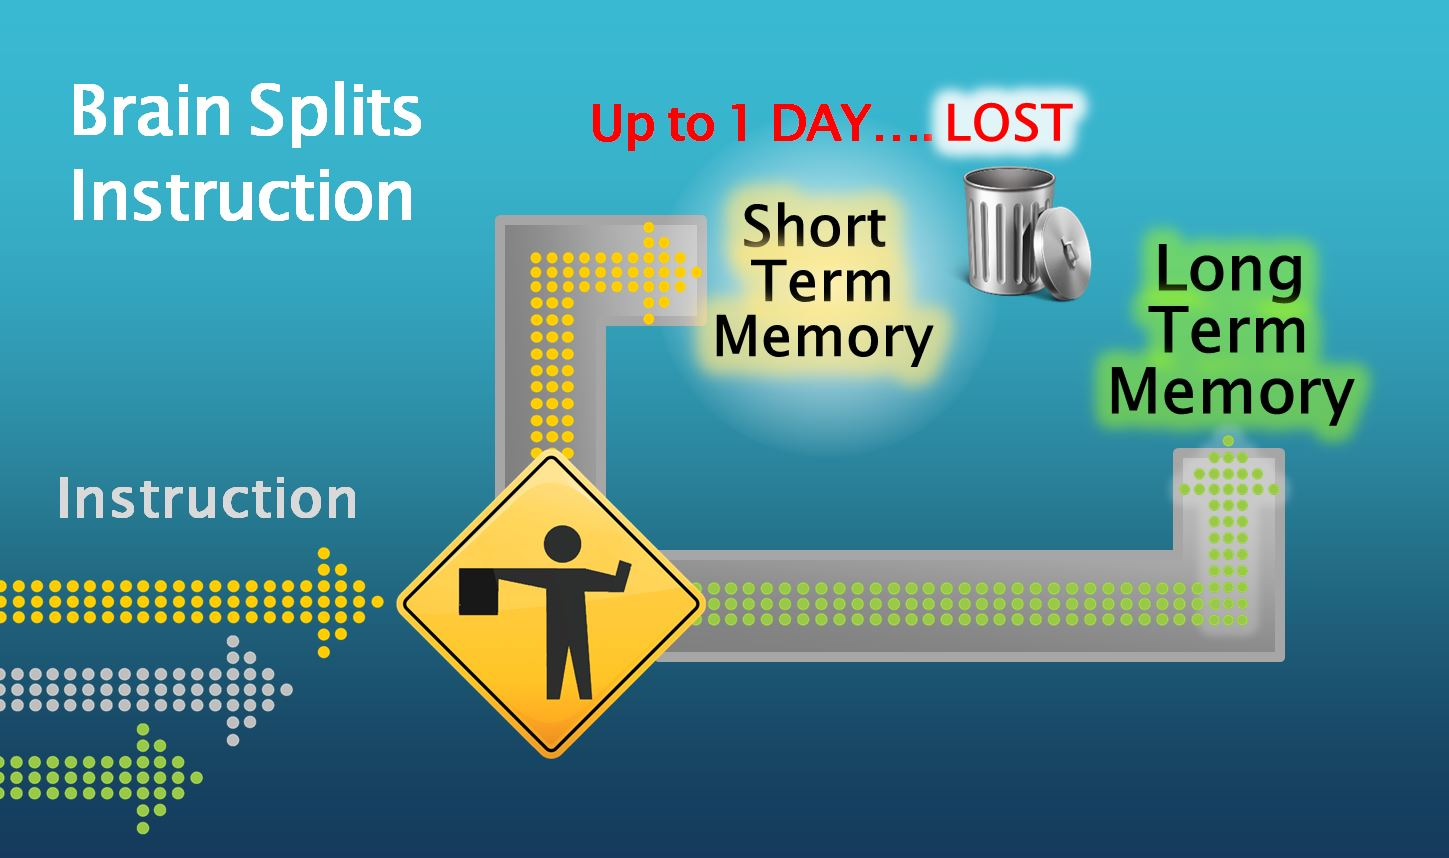 a comparison between long term memory and short term memory Difference the brain stores information in its short-term memory that it only needs for a few minutes, such as a phone number long-term memory contains data that the brain will use for years, such as how to use a telephone.